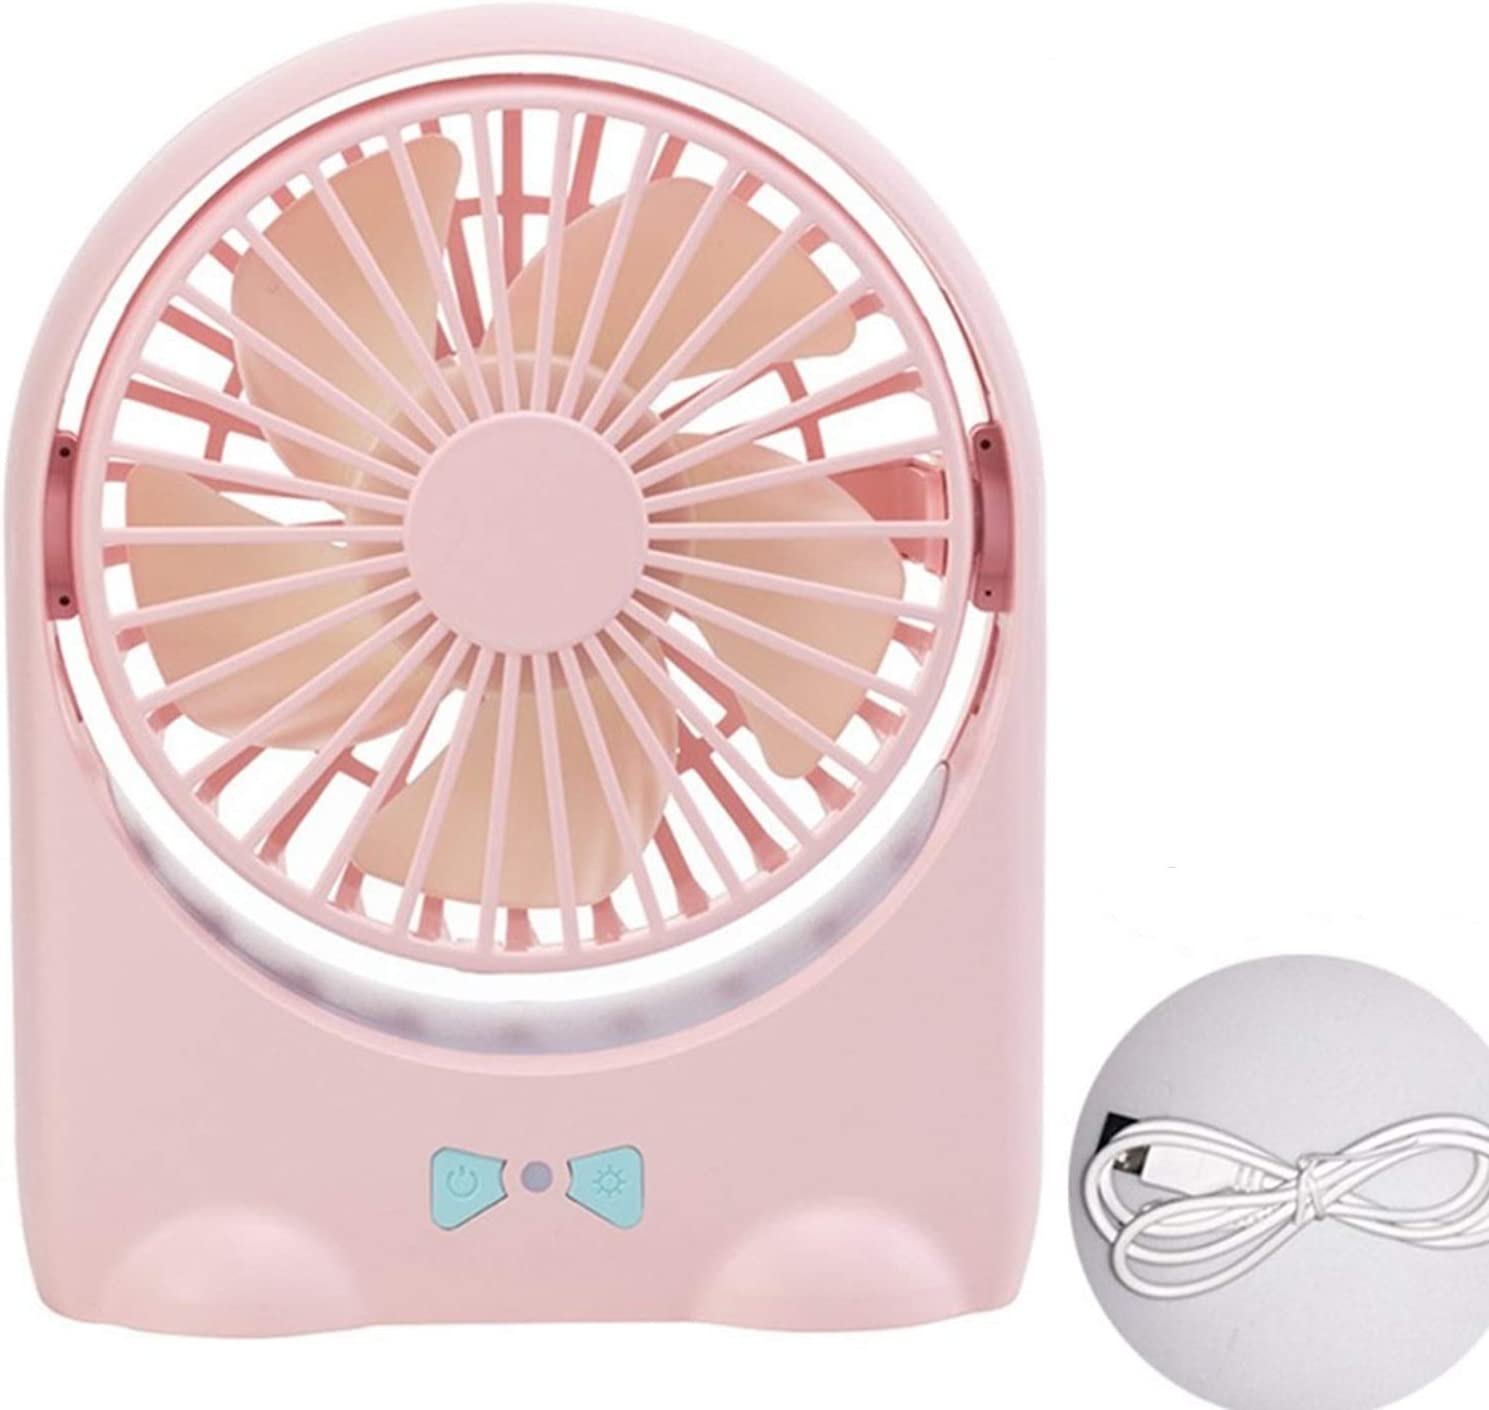 Convenient USB Small Electric Fan Rechargeable Mini Portable Mute Student Dormitory Office Desktop Electric Fan Handheld Durable Color : Pink